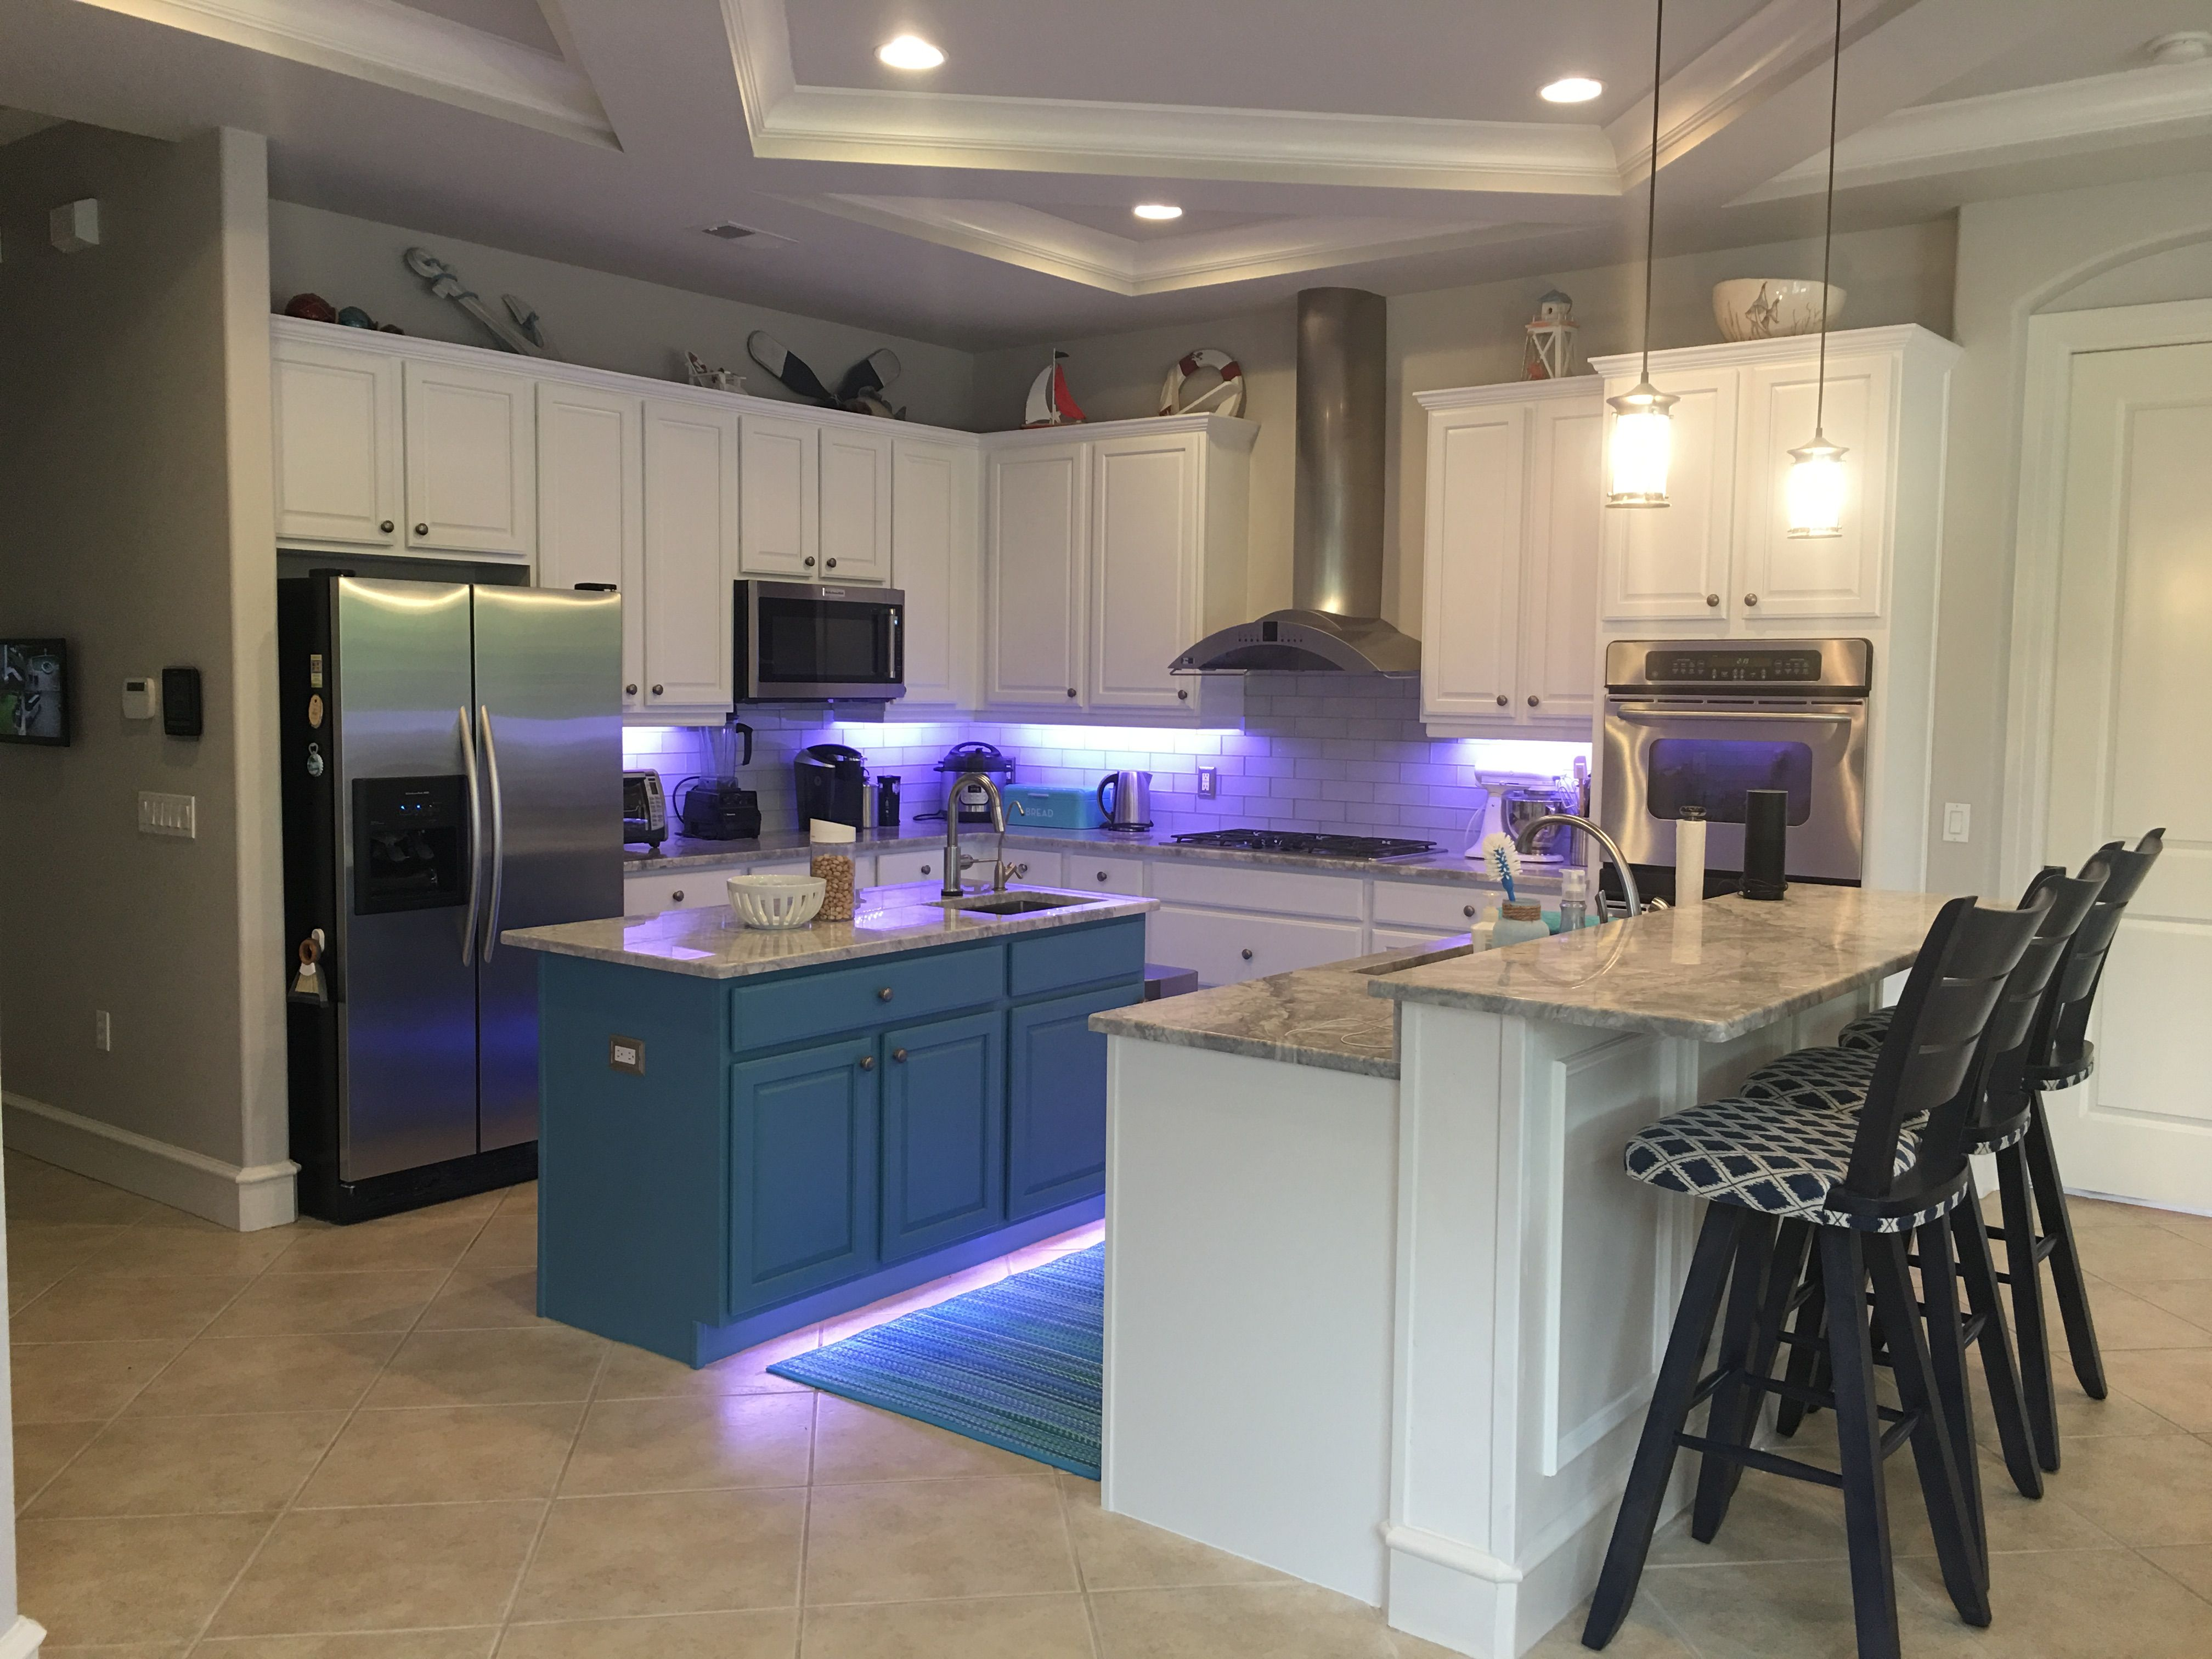 Breakthrough Cabinet Paint Professionally Painted Delicate White And Aqua Blue Island Accent Counters Are Superwhite Quartzite Backsplash Is Gl